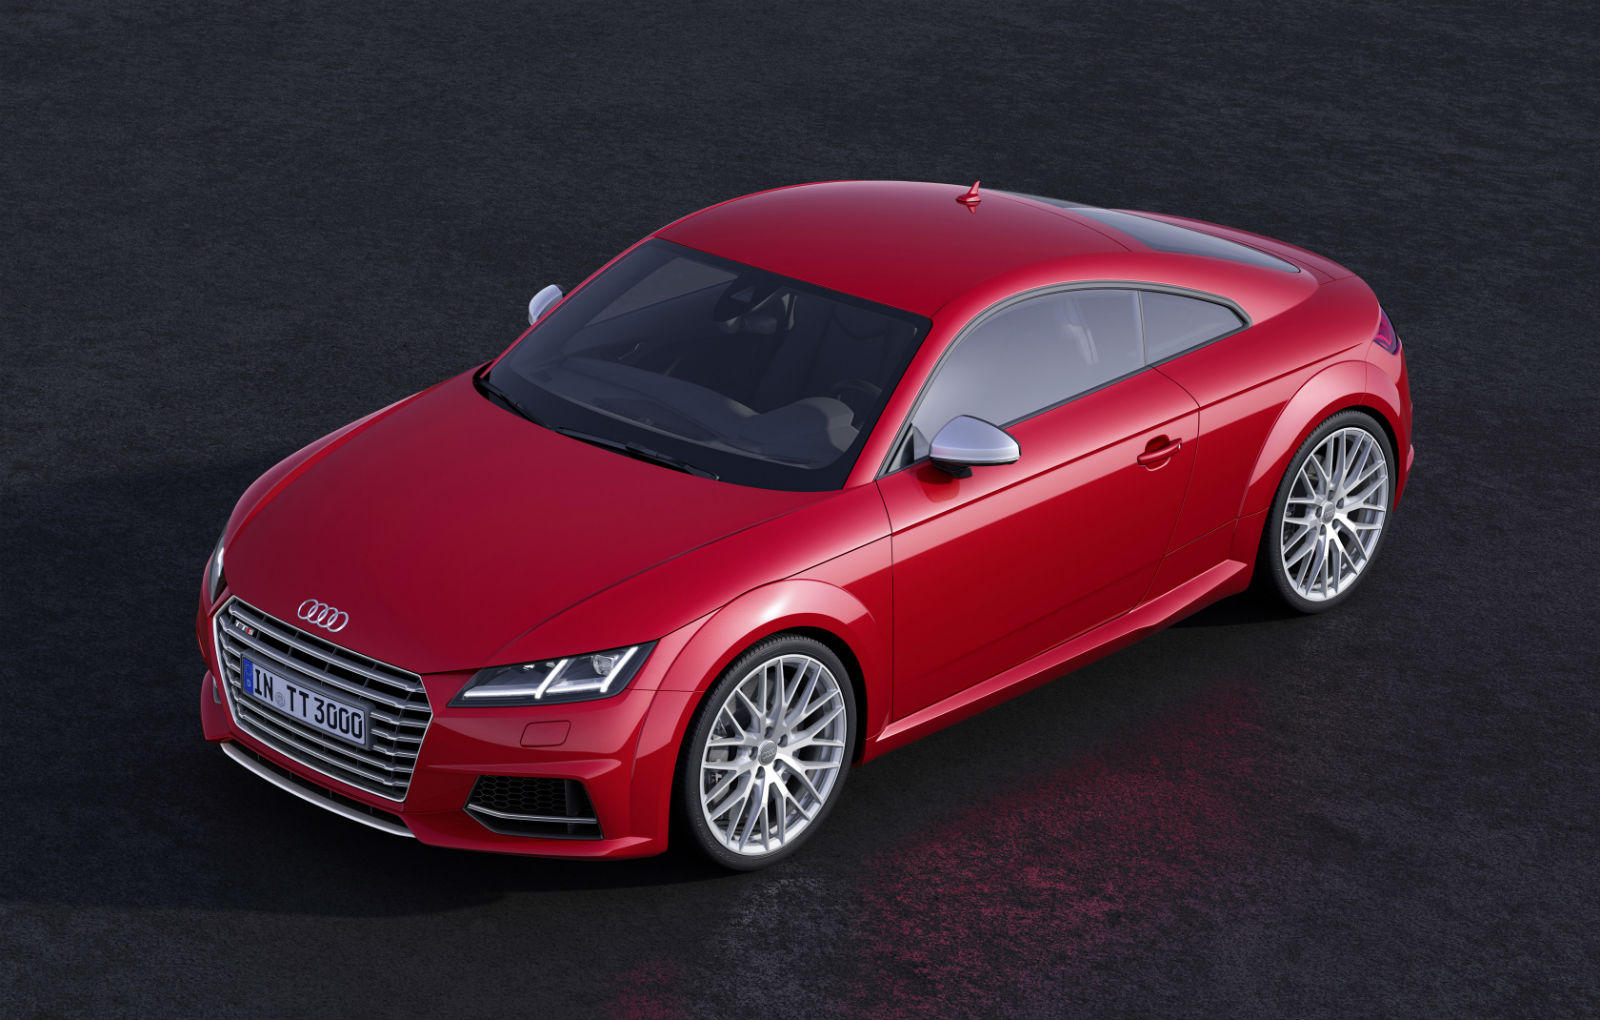 2015 Audi TTS Car Wallpaper   HD 1600x1020